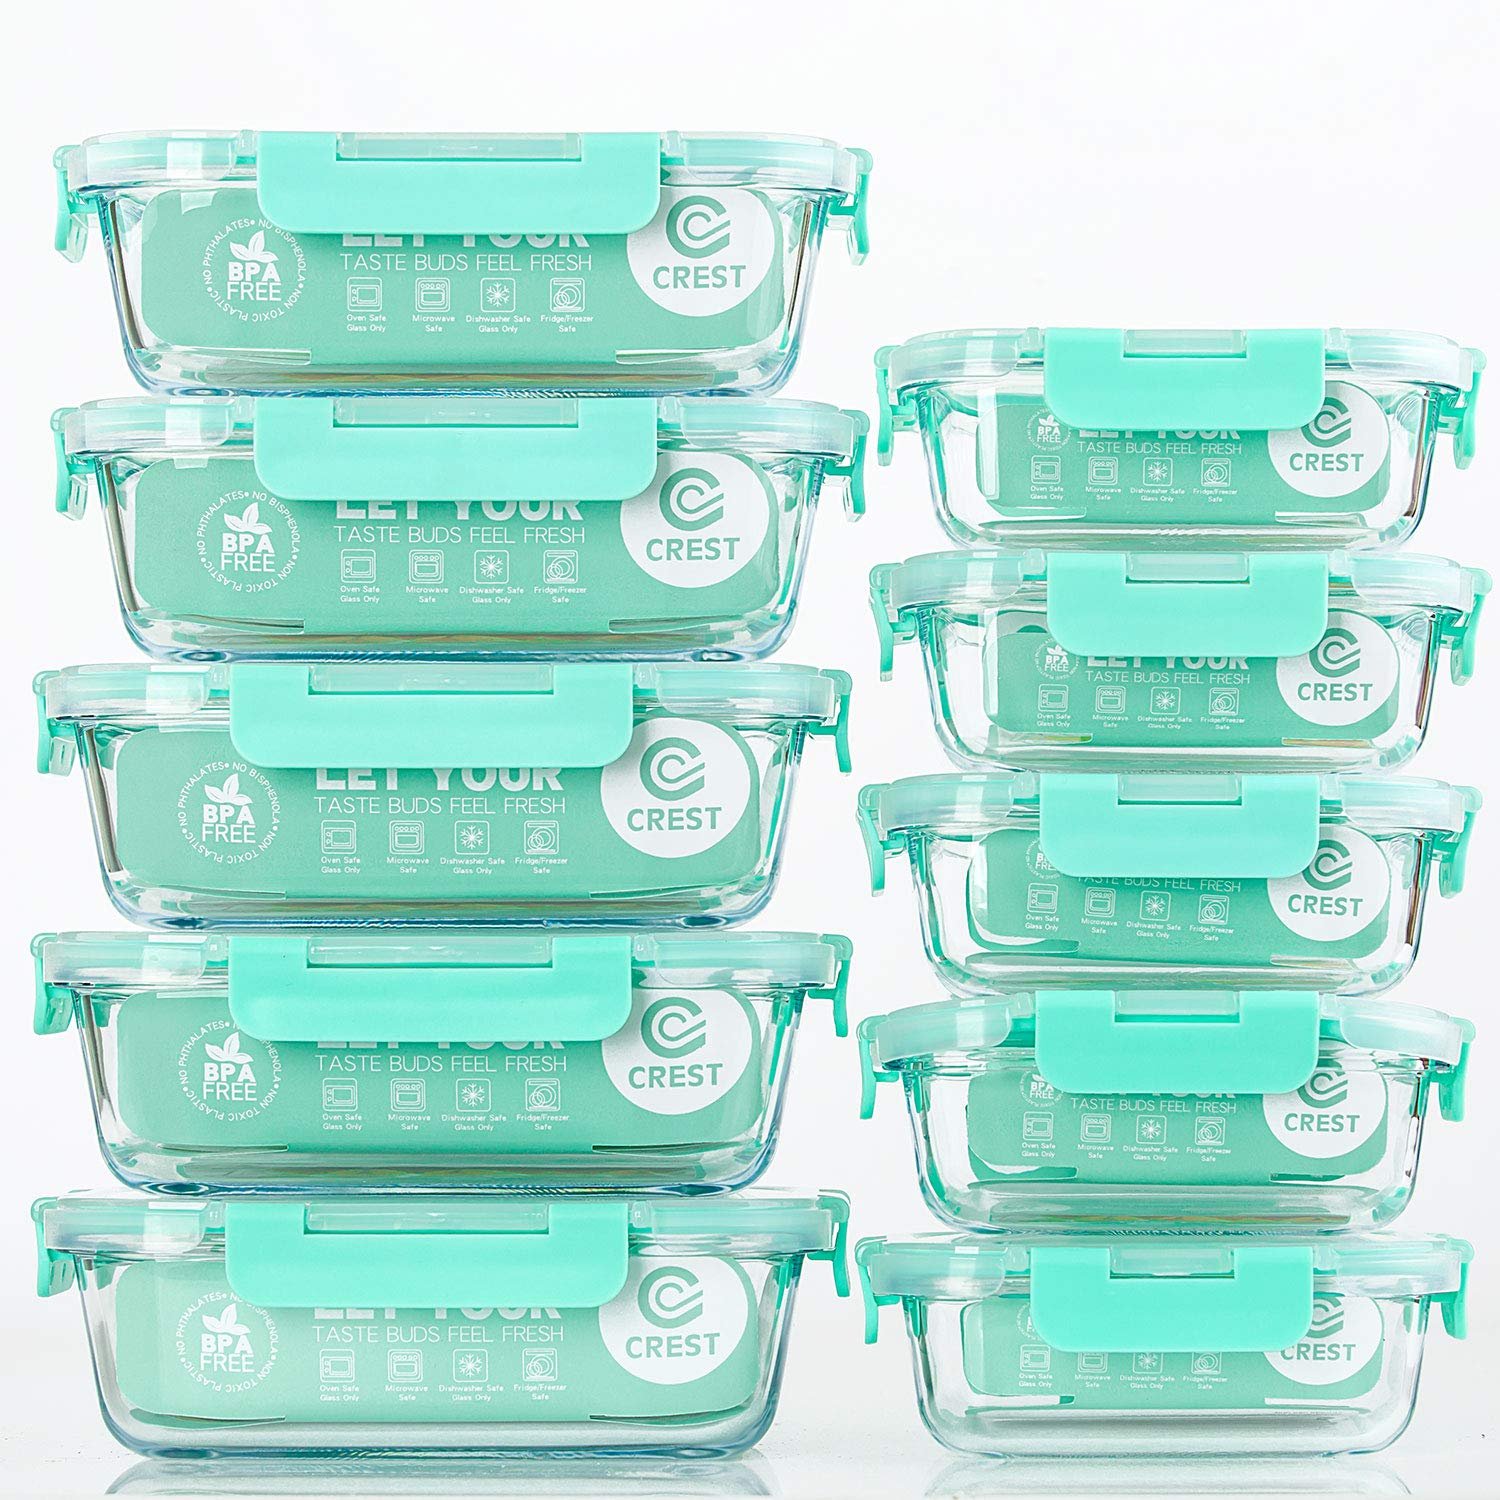 [10-Pack] Glass Food Storage Containers with Lids, Airtight, BPA Free, Meal Prep Containers for Kitchen, Home Use by C CREST